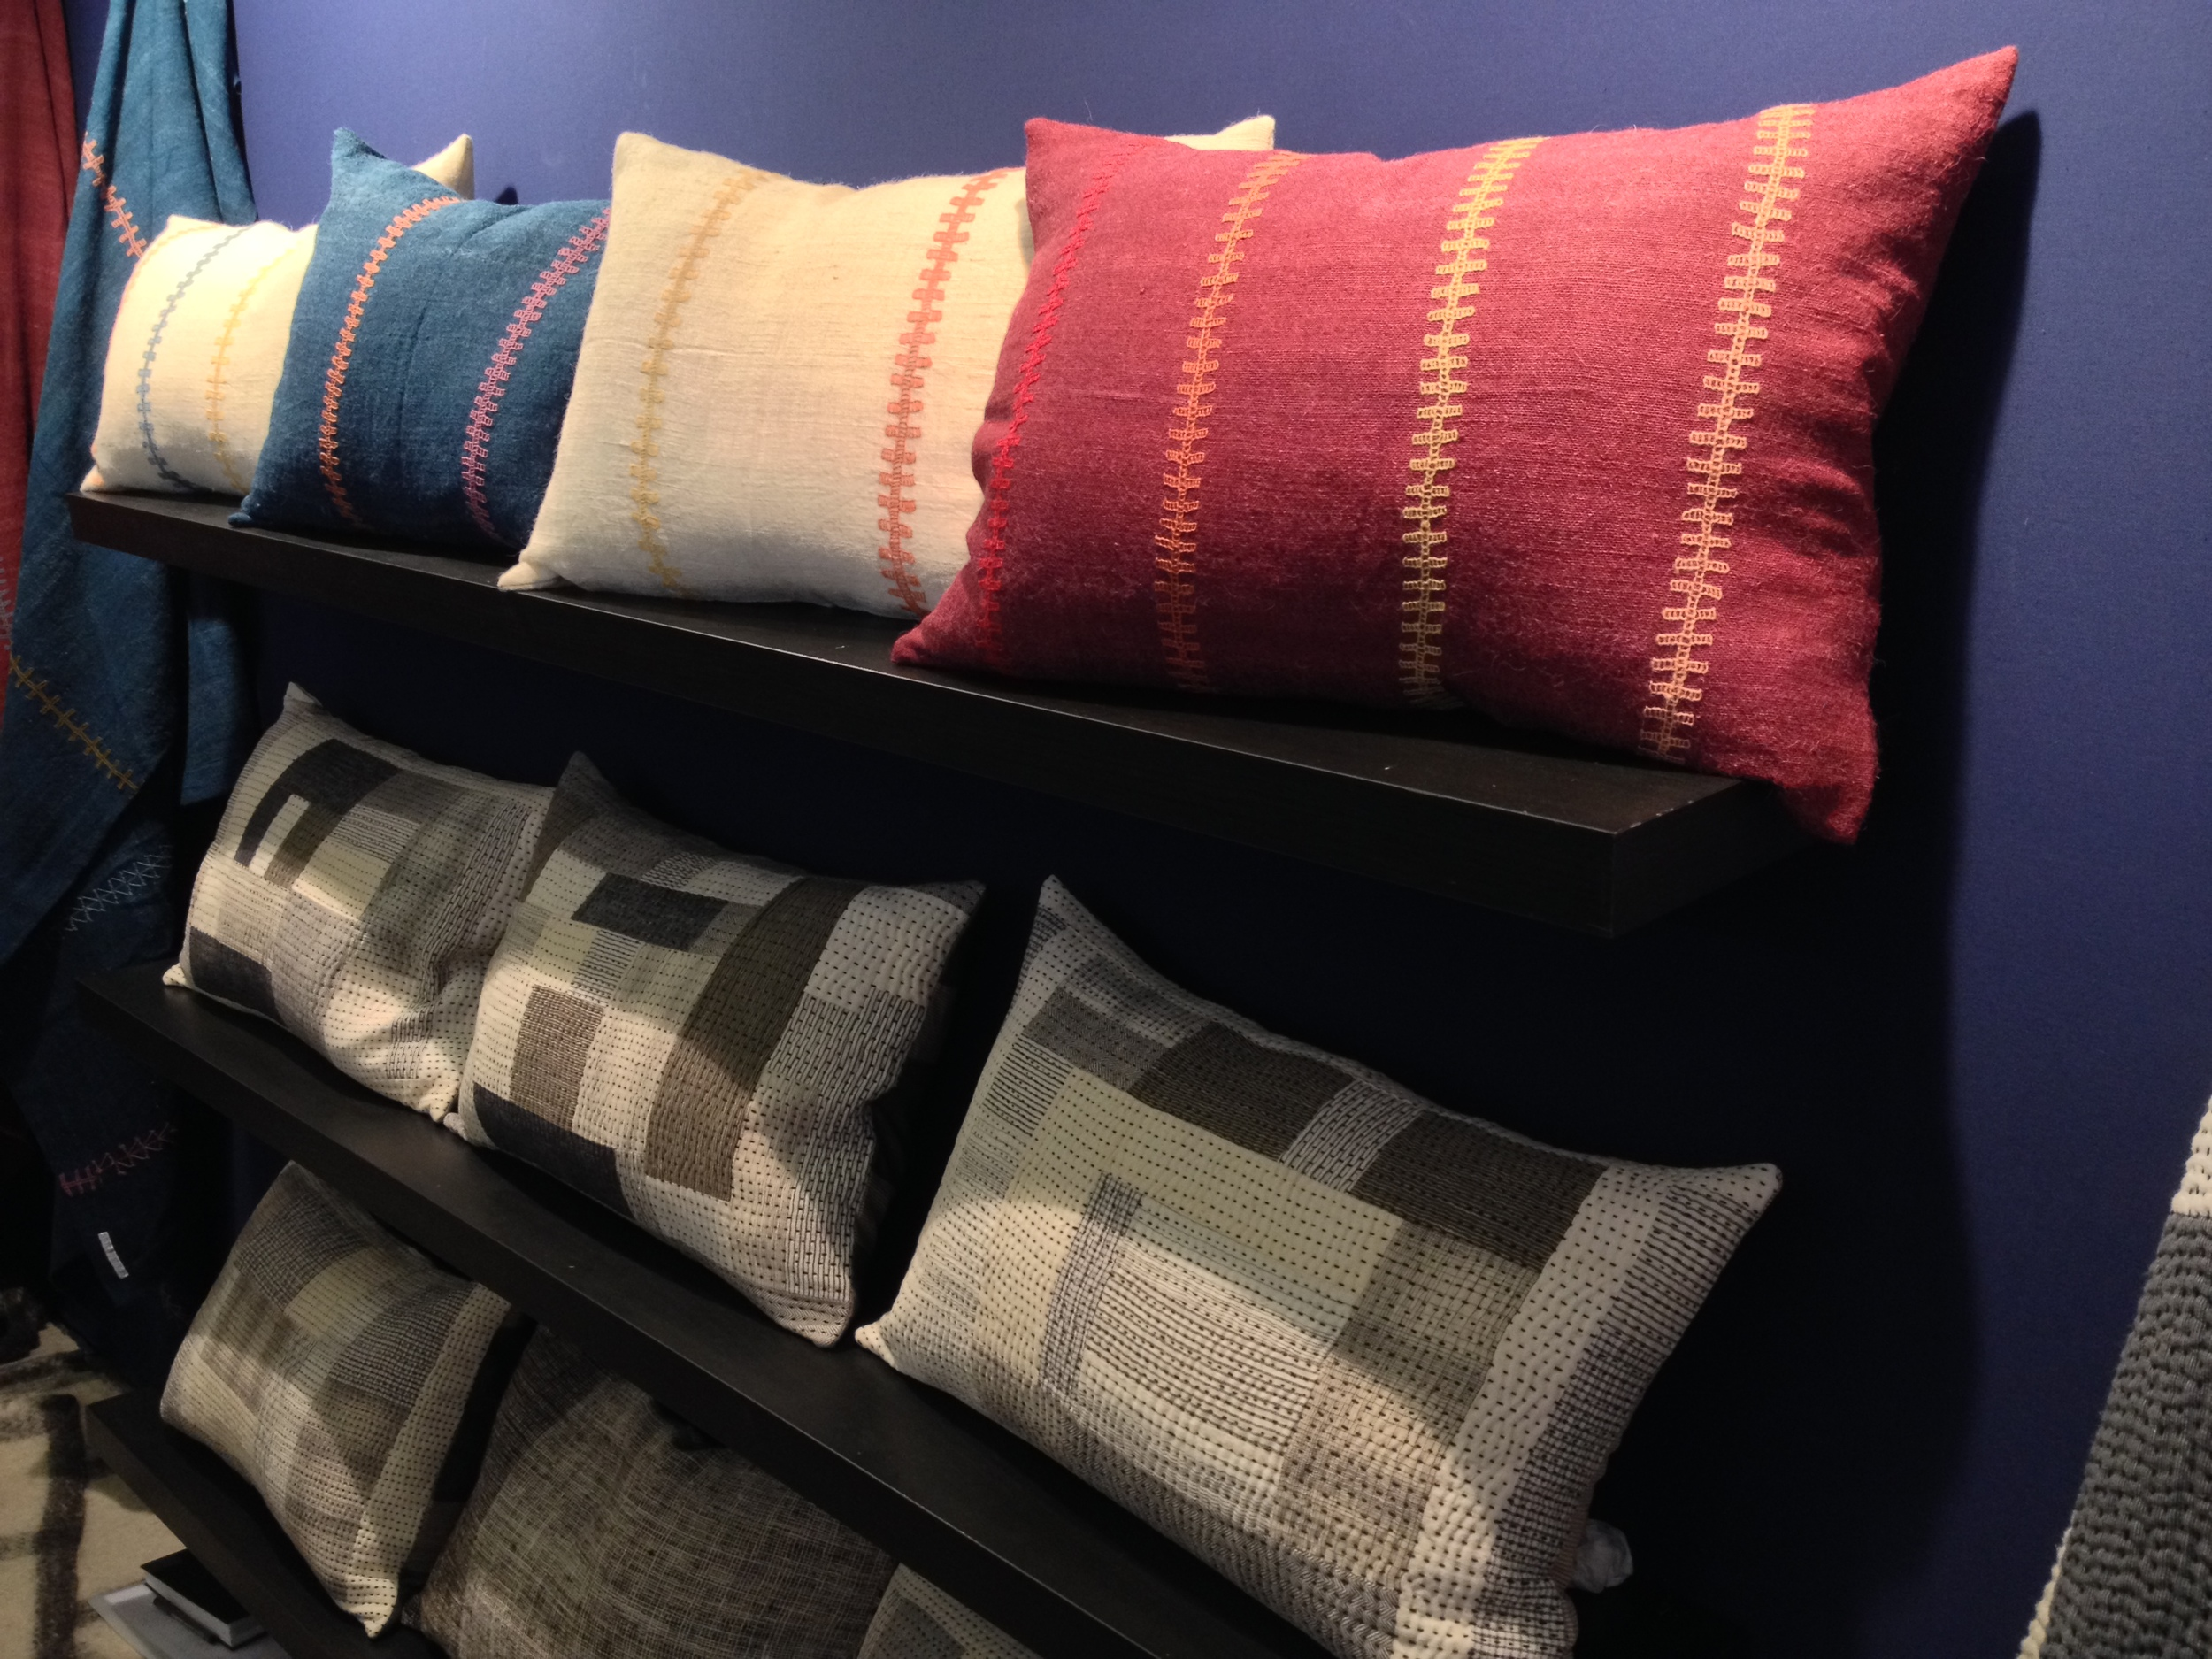 New patchwork Chindi cushions and improved handwoven wool Desi cushions